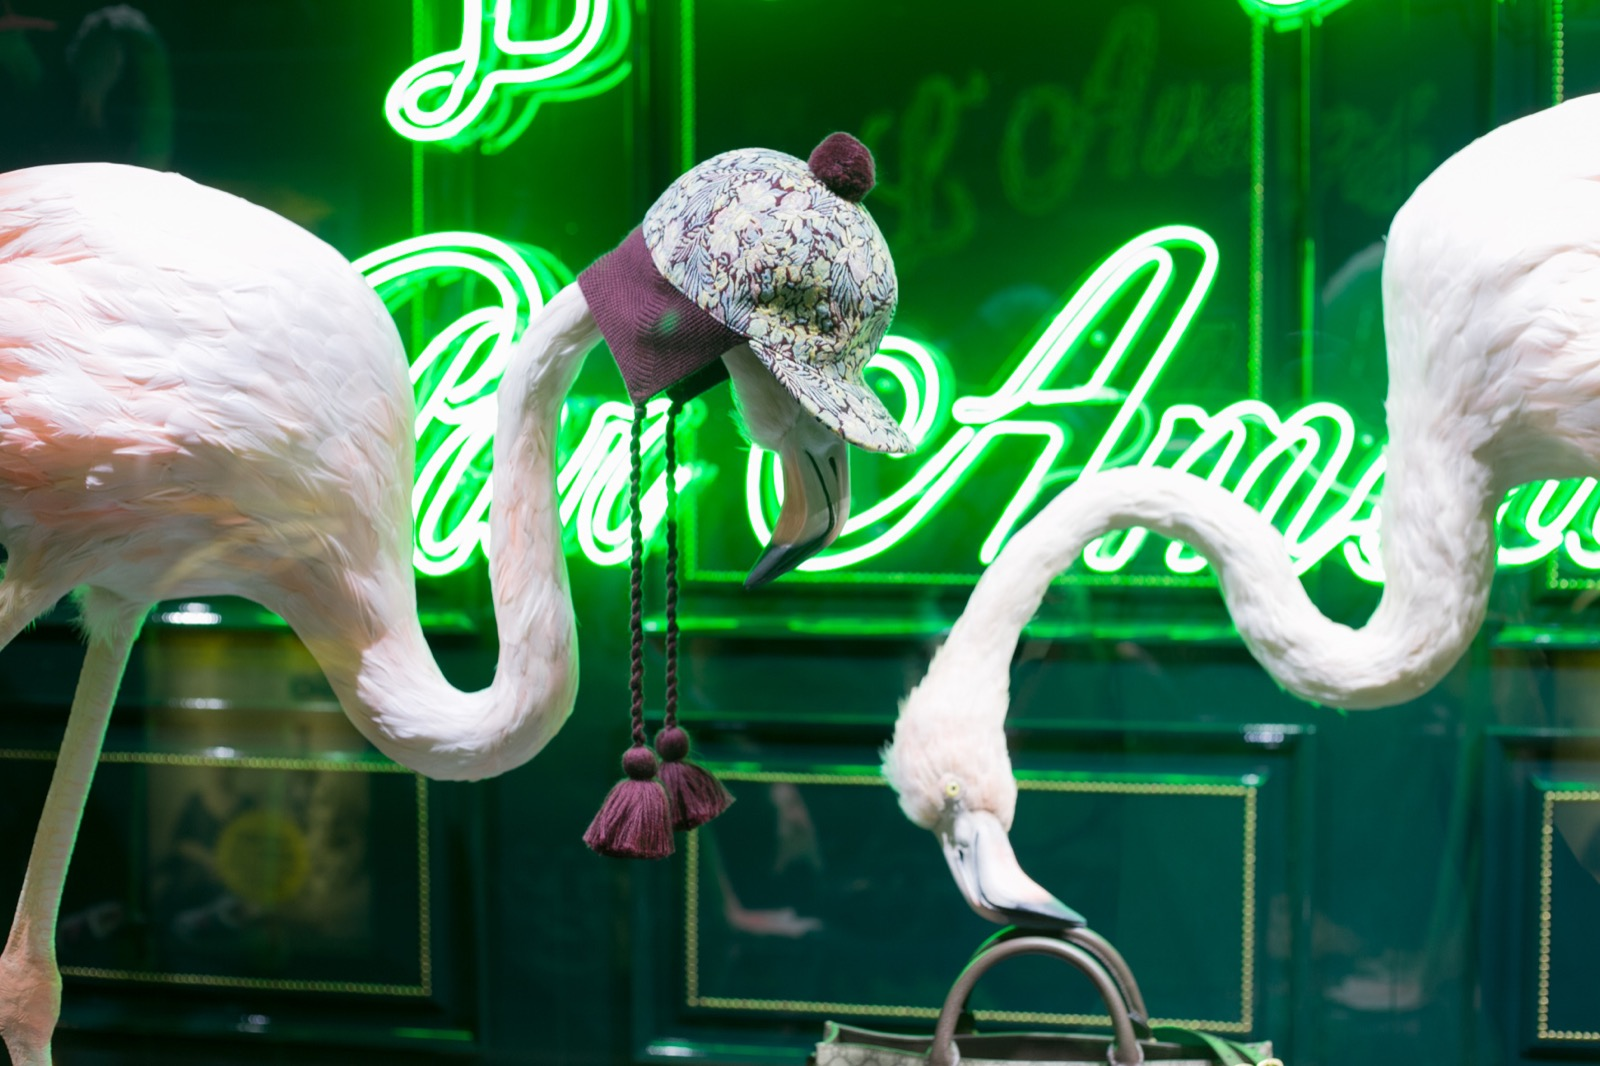 Sculpting, molding, casting, painting and feathering of 9 flamingo sculptures